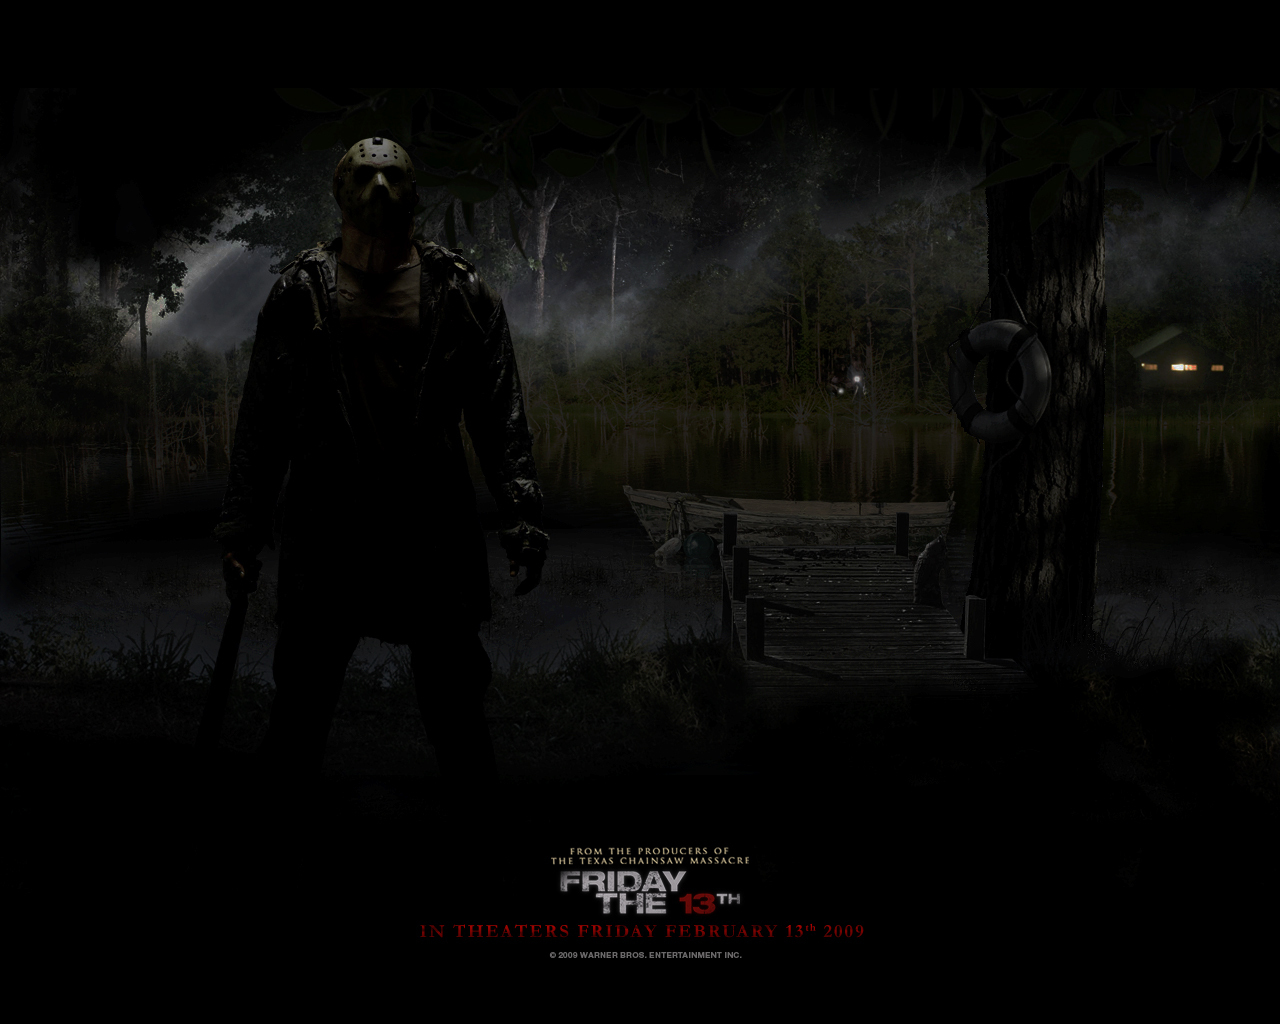 Friday the 13th - Friday The 13th (2009) Wallpaper ...